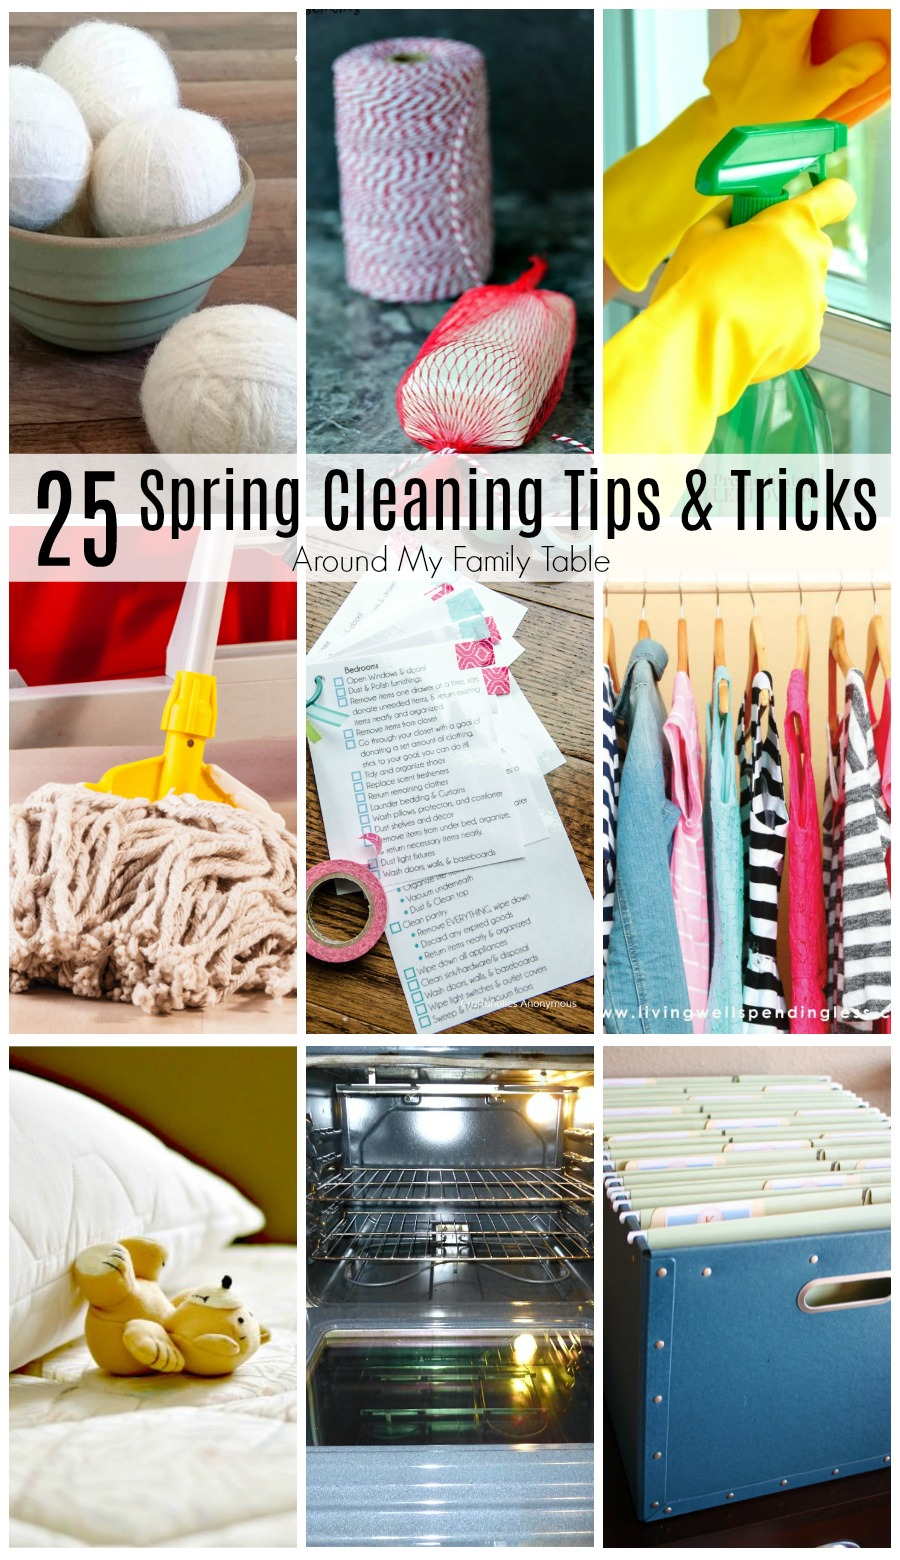 It's time for spring cleaning and these 25 Spring Cleaning Tips & Tricks will help make this task a breeze!